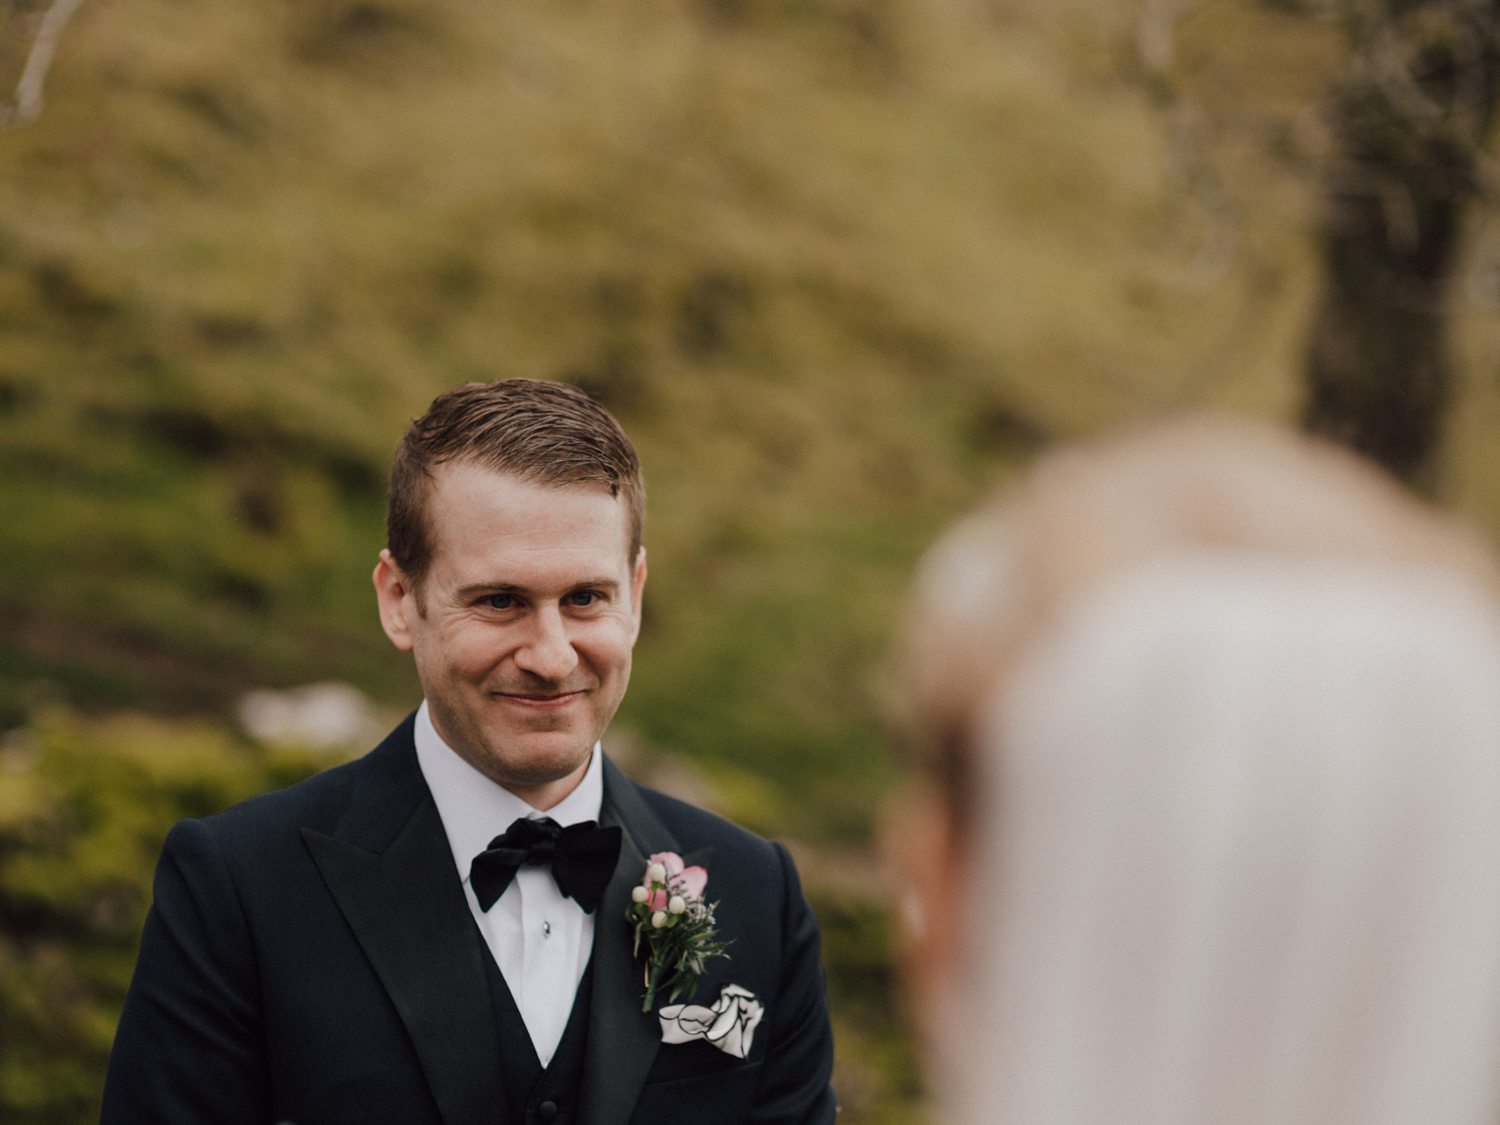 capyture-wedding-photographer-destination-elopement-isle-skye-scotland-207